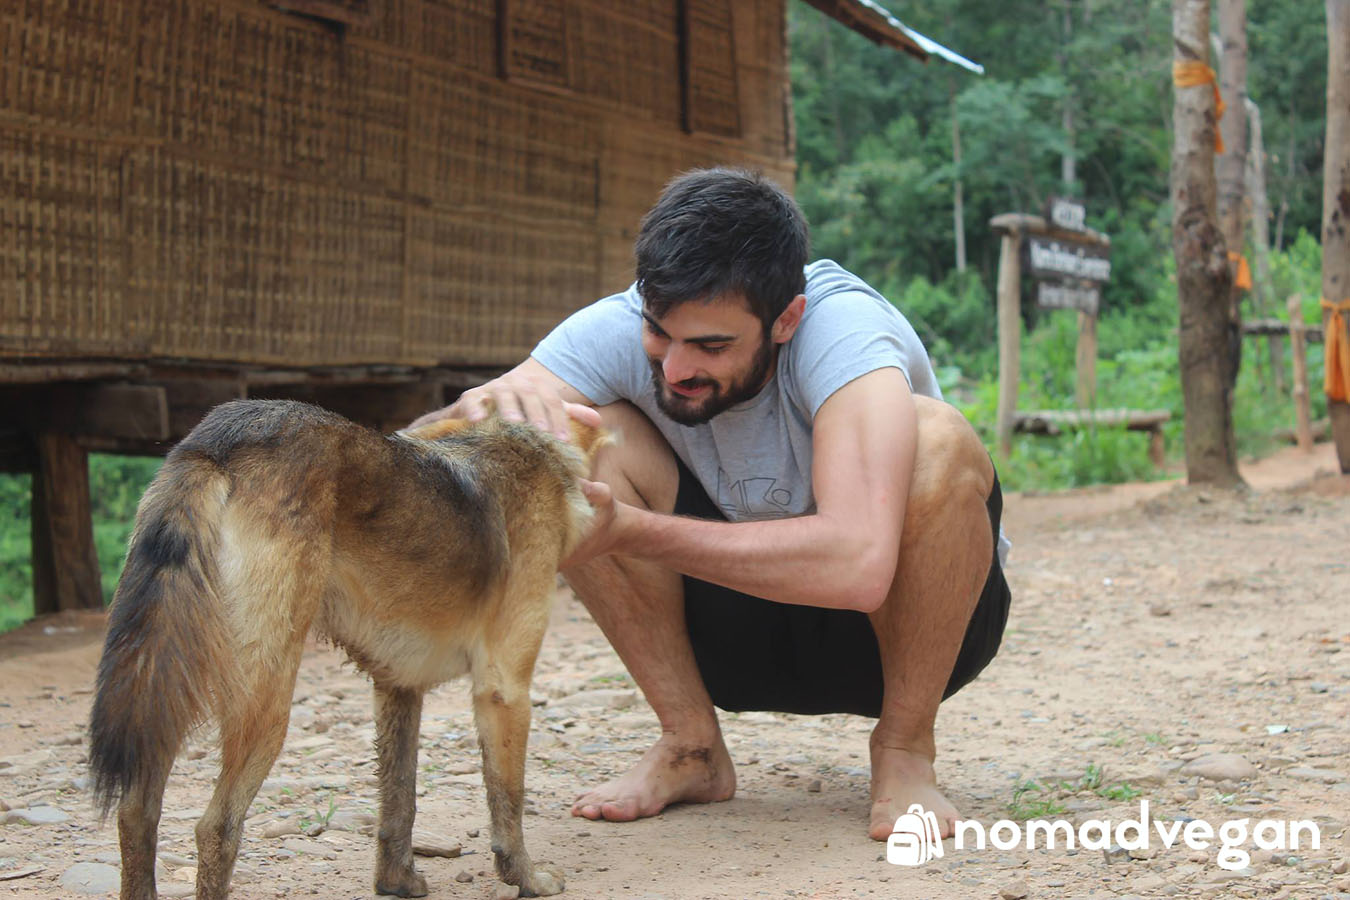 soi dog foundation thailand animal sanctuary